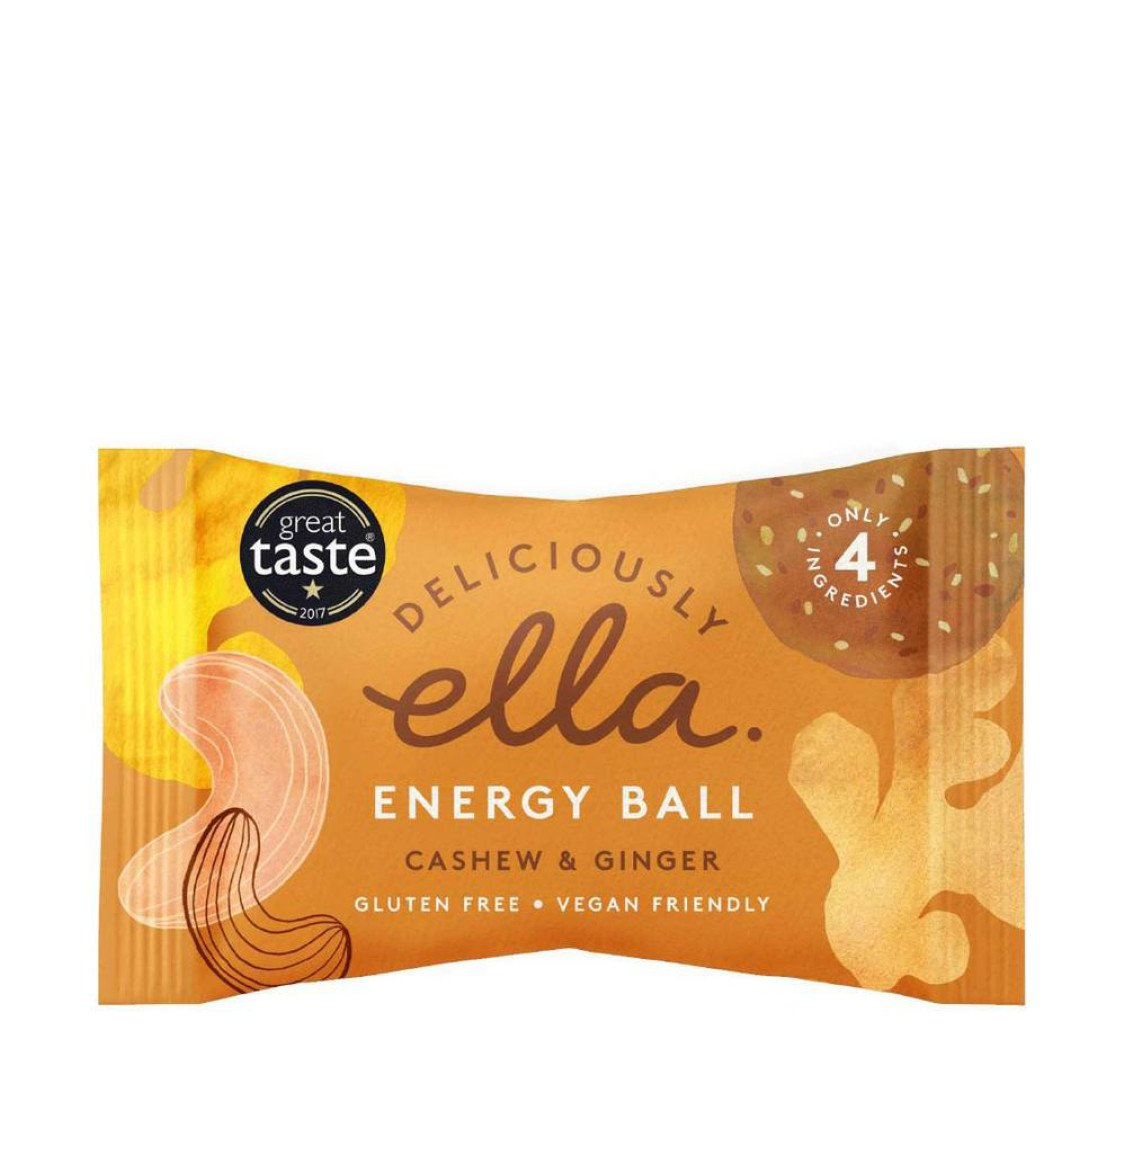 Deliciously Ella Cashew And Ginger Energy Ball 2 x 40g